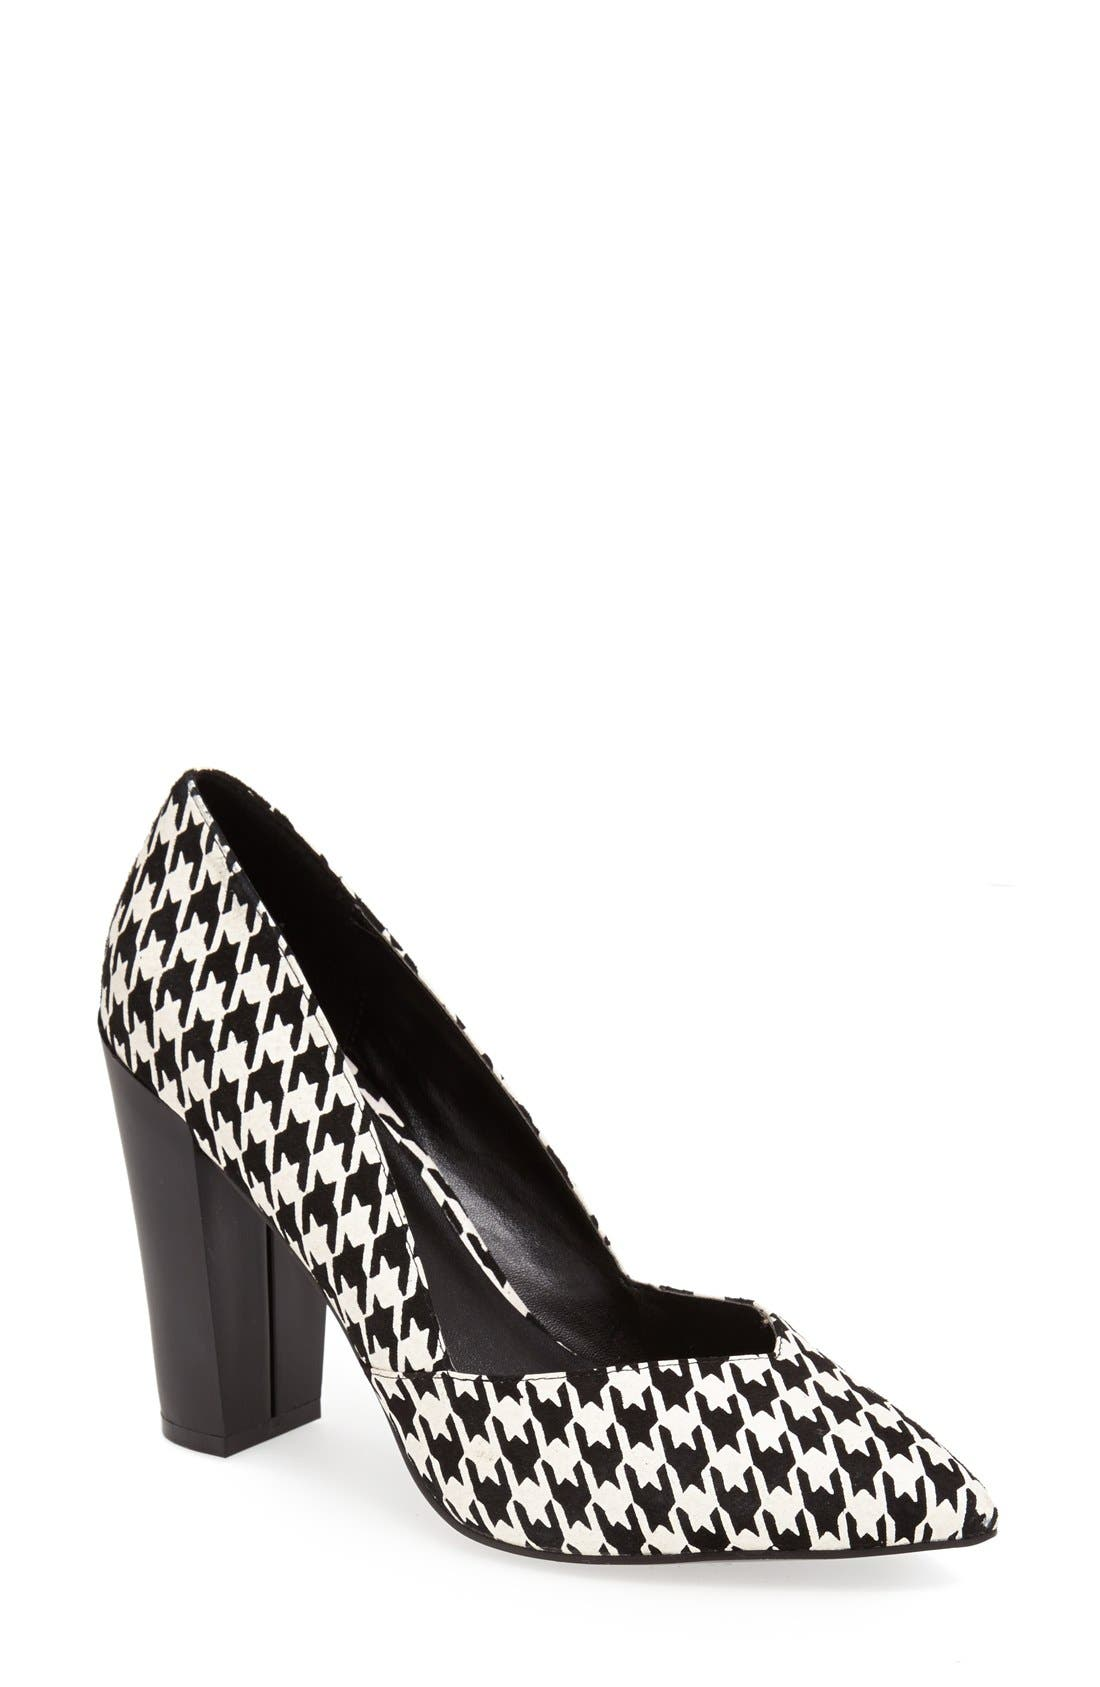 Alternate Image 1 Selected - Charles by Charles David 'Prospect' Pointy Toe Pump (Women)